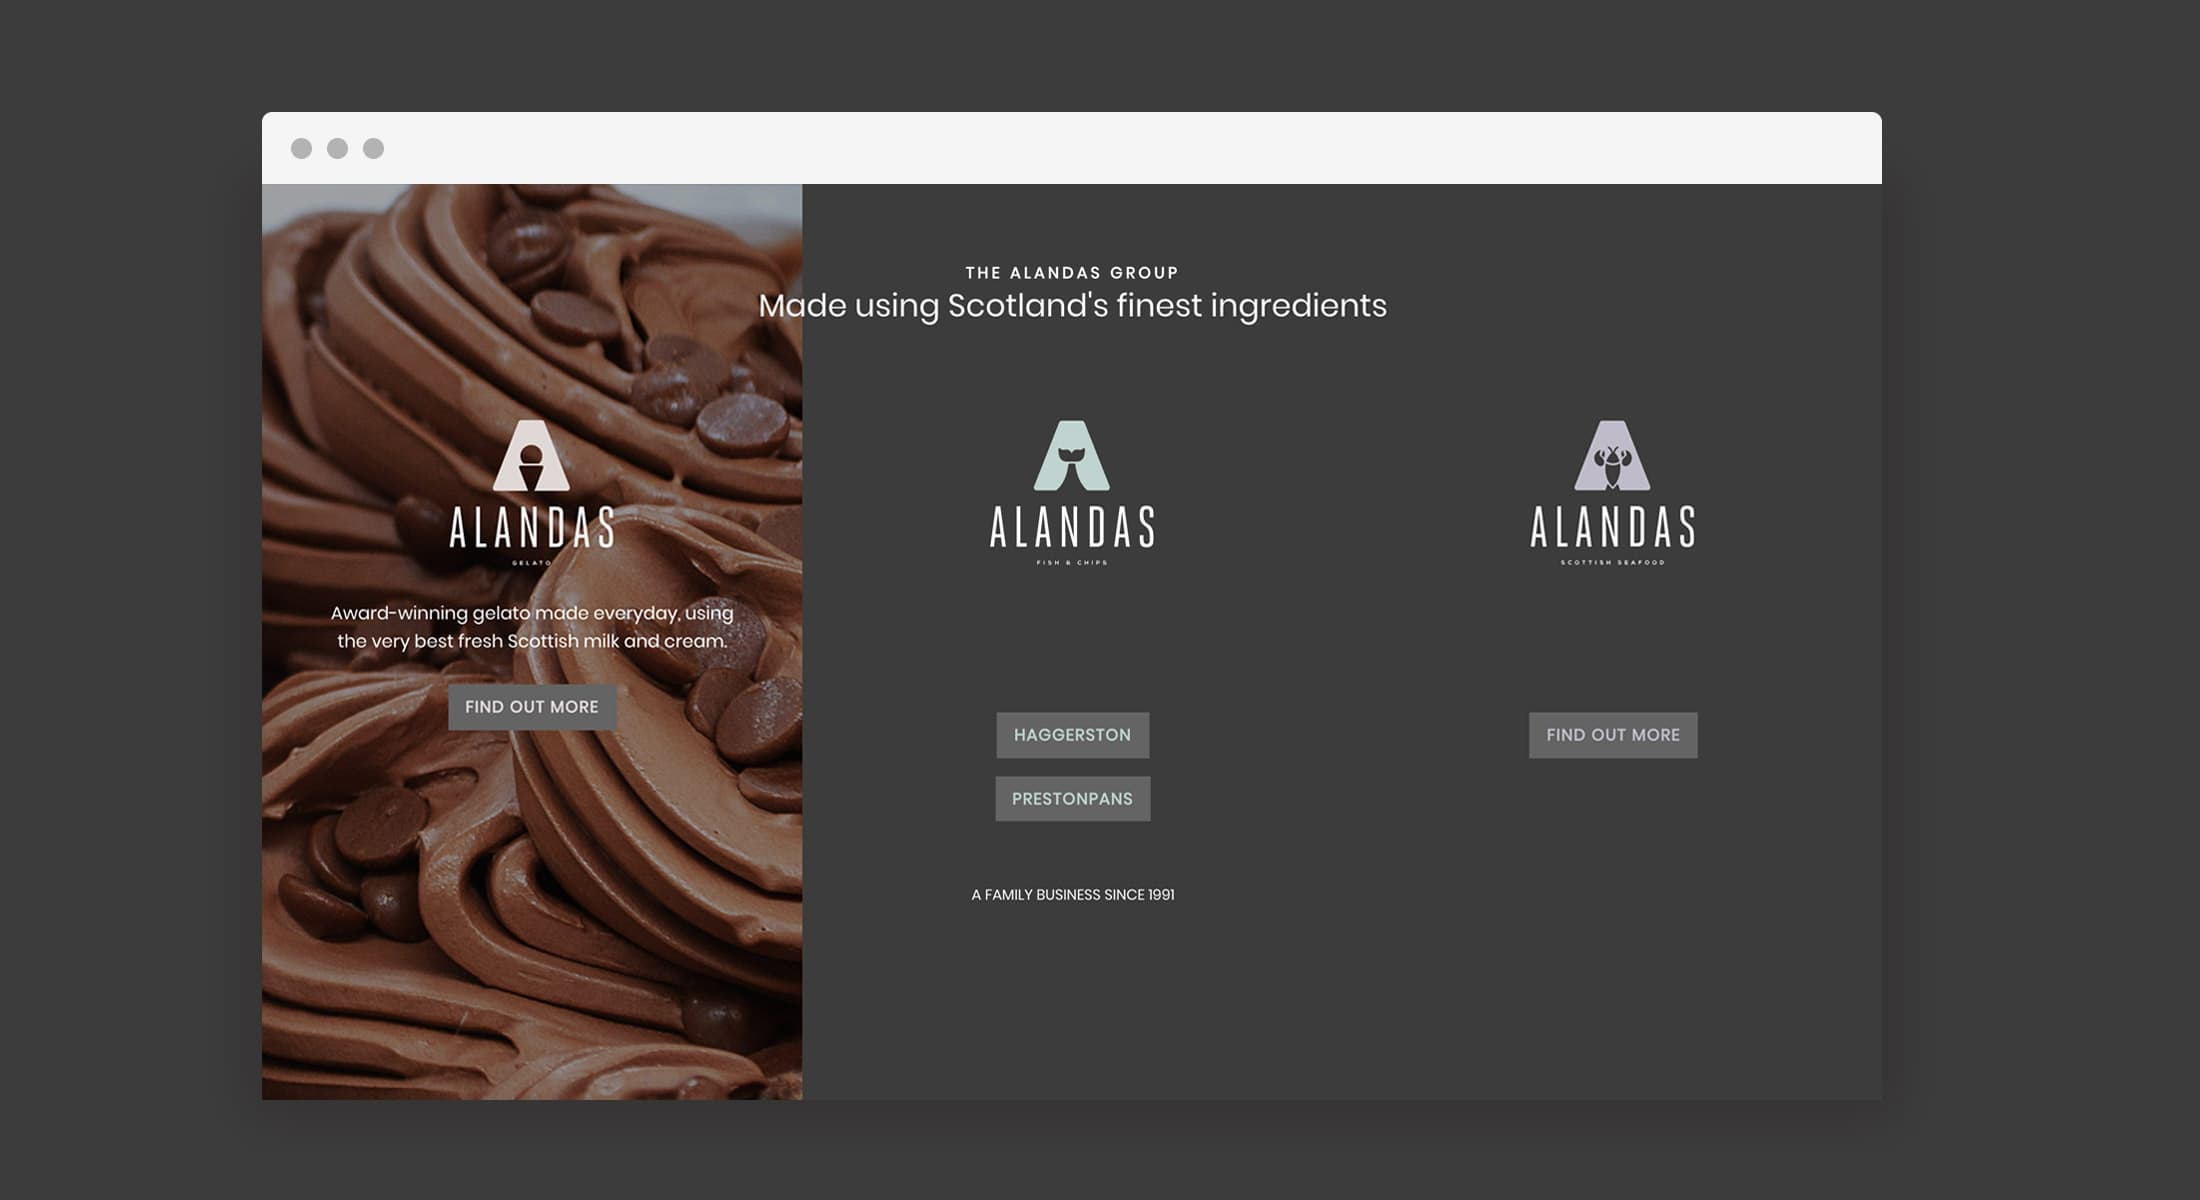 View more on our Eat Marketing case study on Alandas.